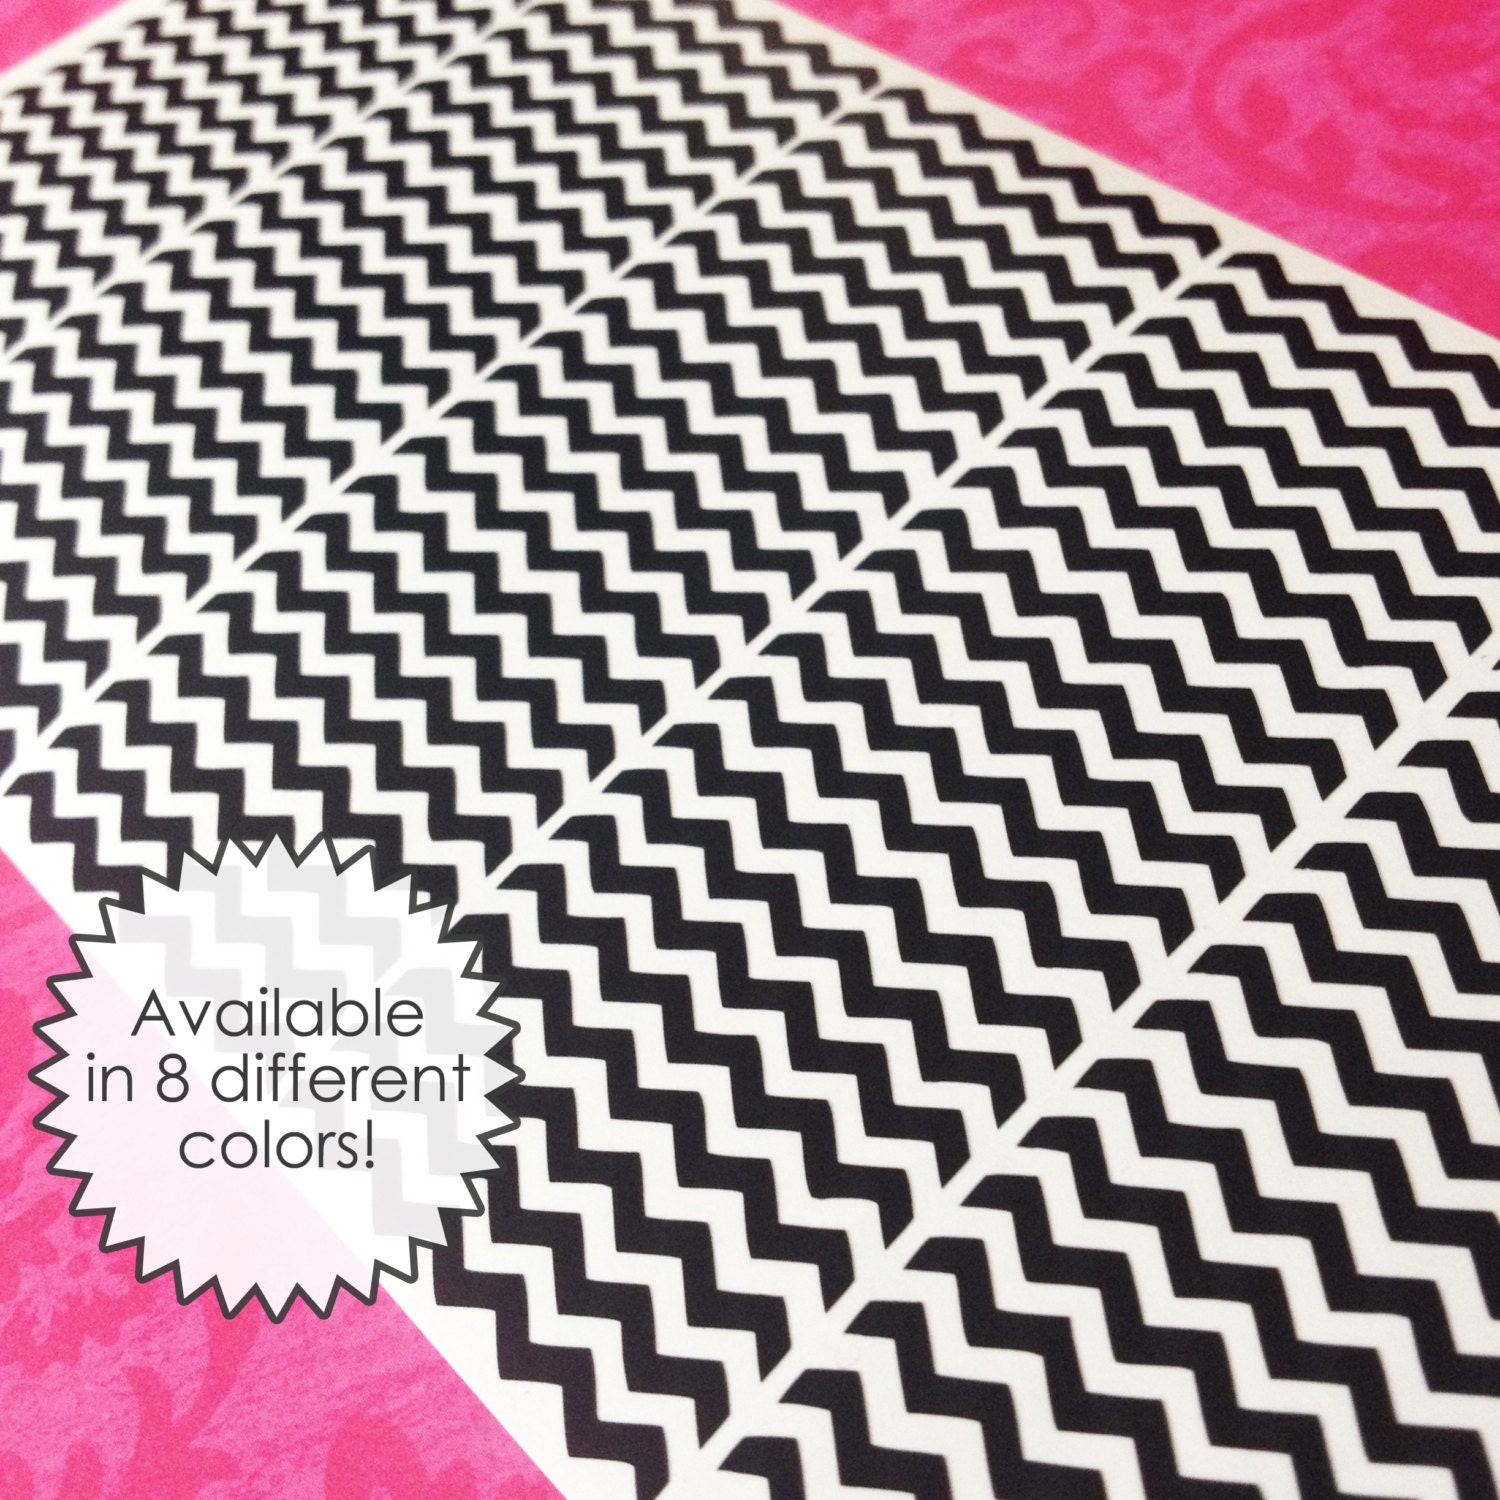 Chevron nail decals nail art nail stickers nail stencils zoom prinsesfo Gallery